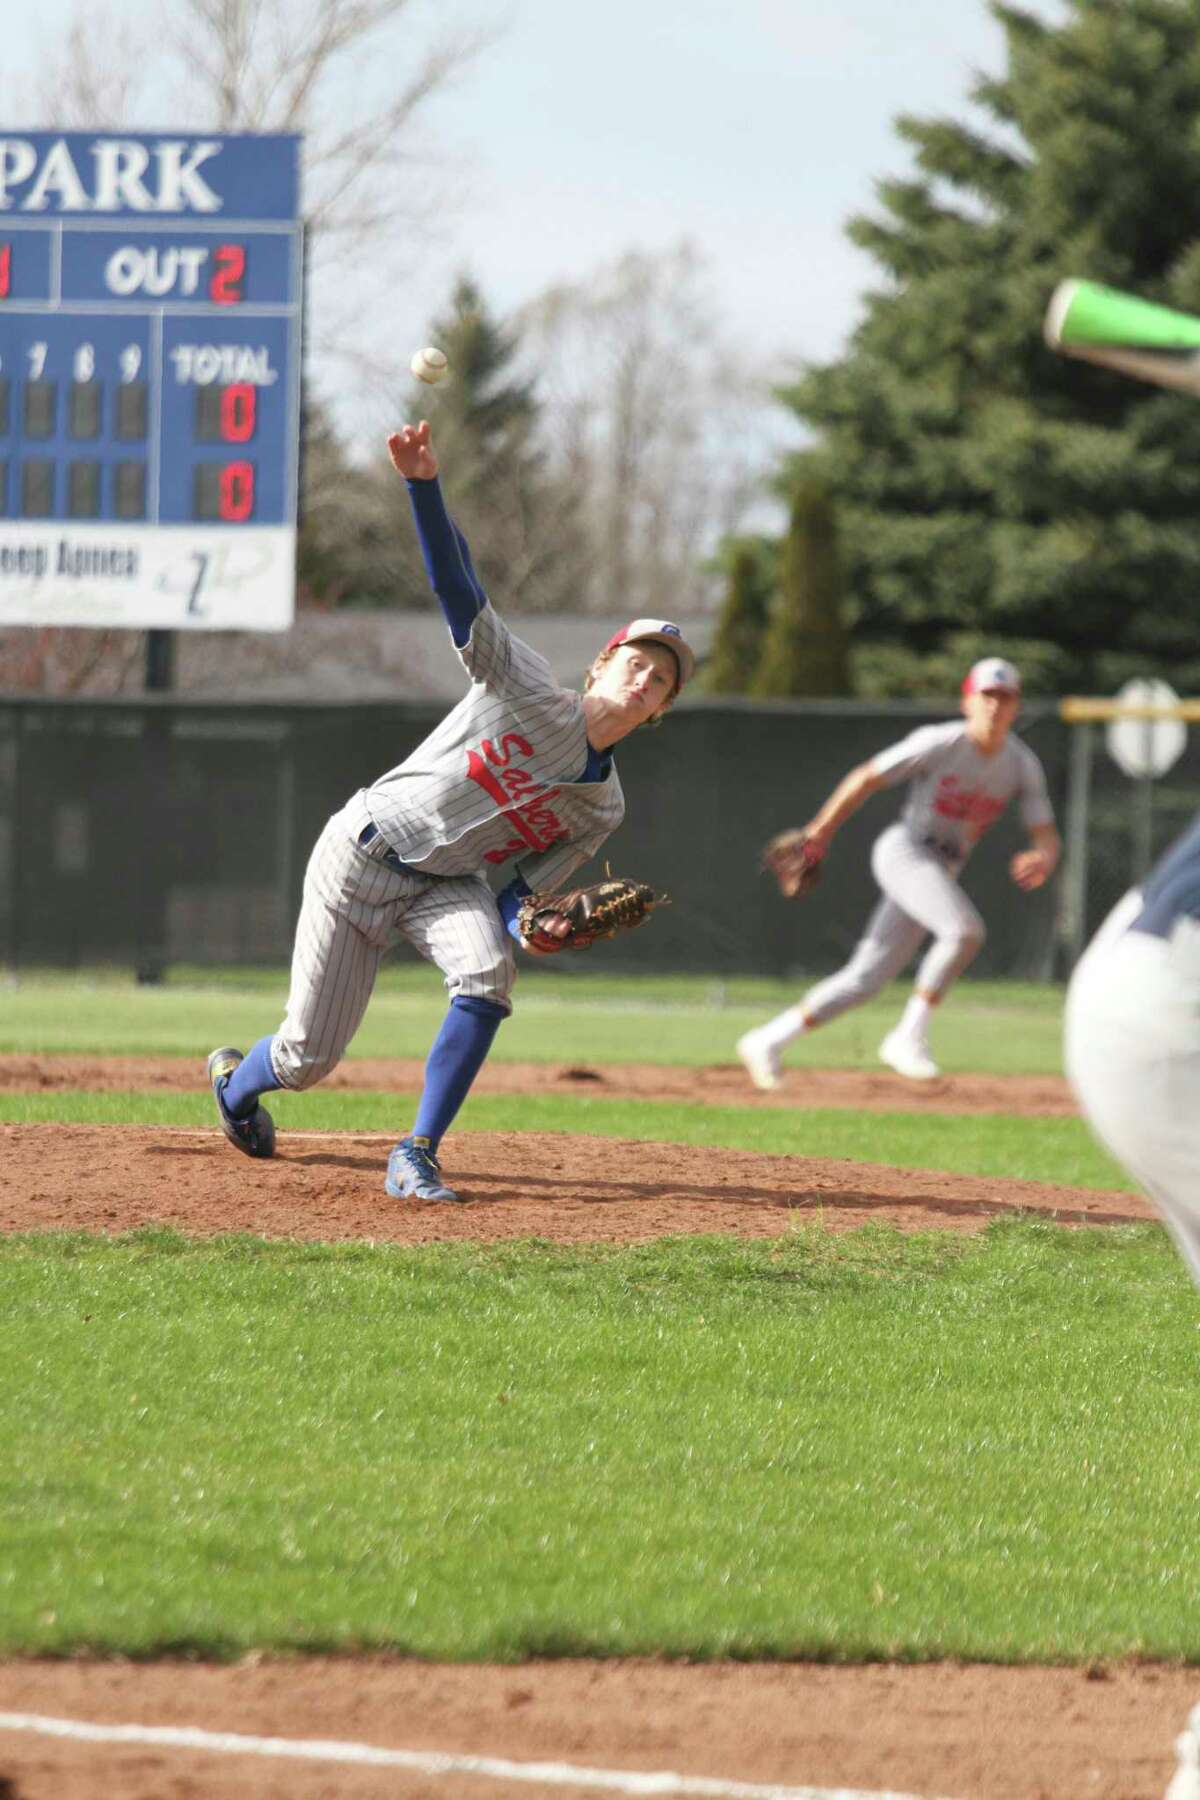 Manistee Catholic Central's Blake Johnson delivers a pitch Monday during a sweep of Brethren. Johnson had 12 strikeouts on the mound. (Dylan Savela/News Advocate)